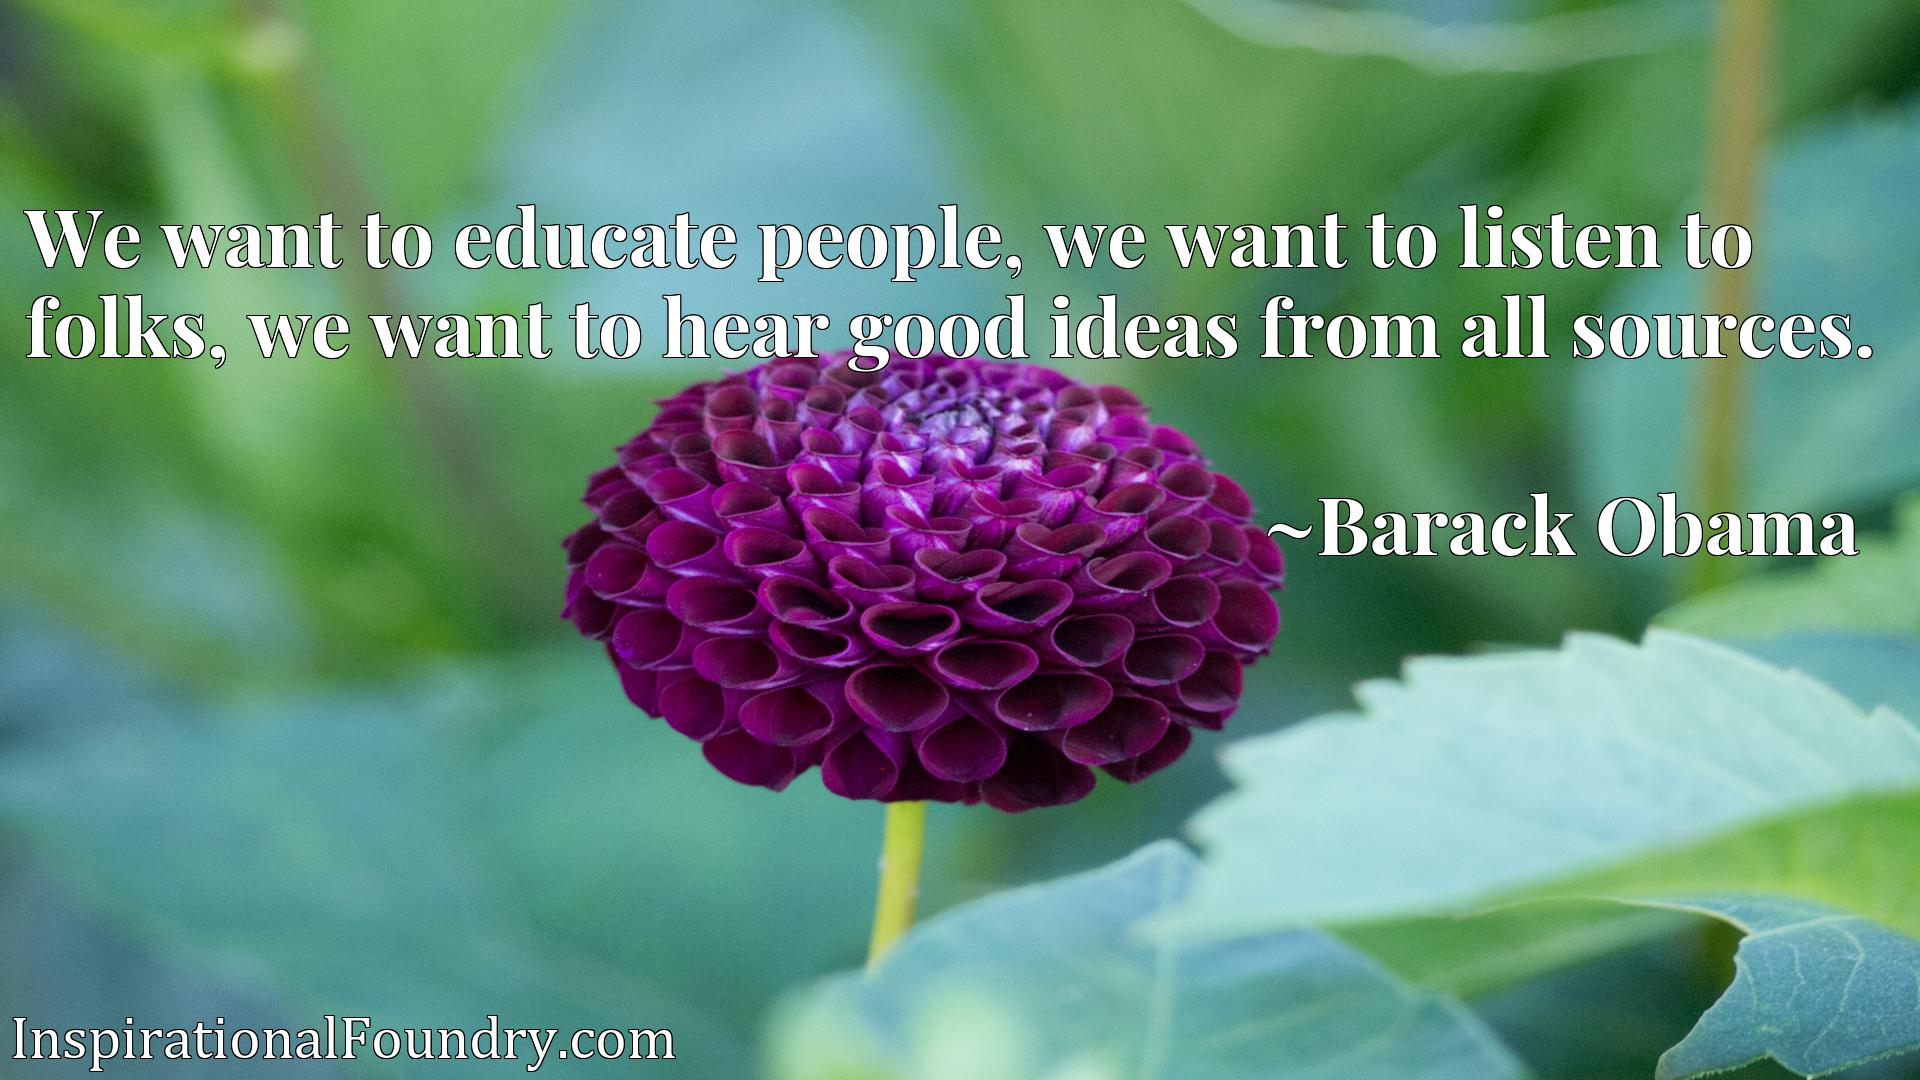 We want to educate people, we want to listen to folks, we want to hear good ideas from all sources.